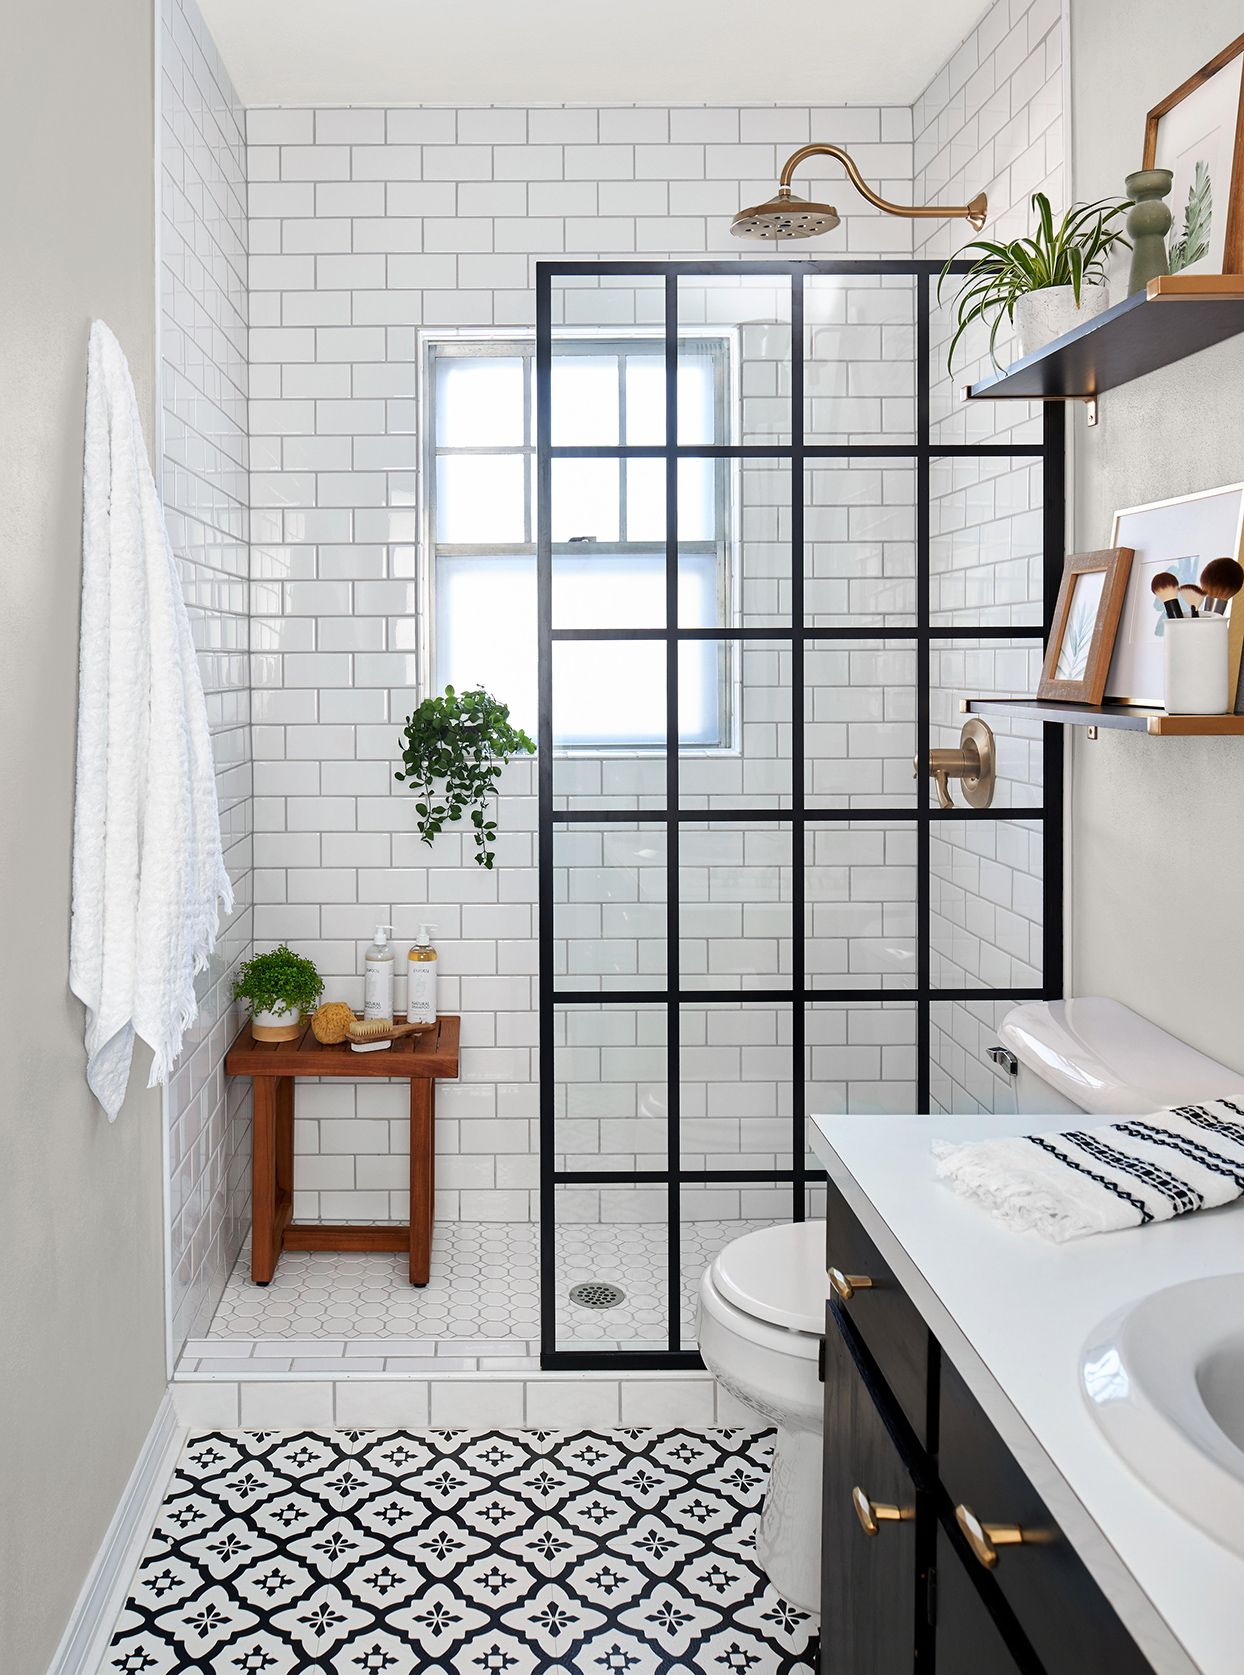 17 Money Saving Tips To Stretch Your Small Bathroom Budget Diy